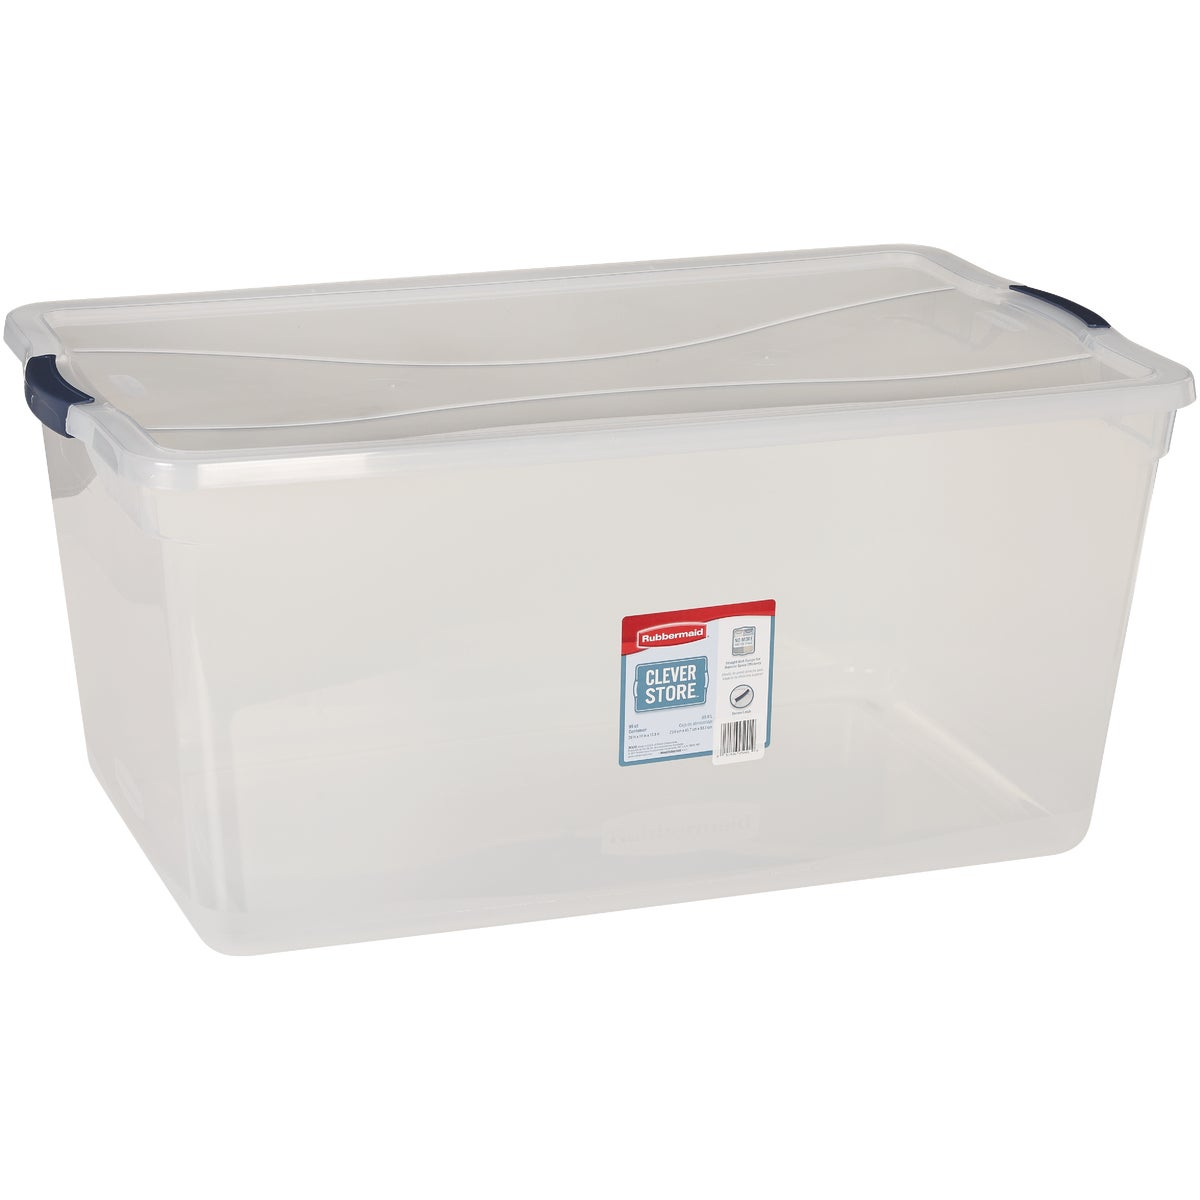 95QT LATCHING STORAGE - 3Q3500CLMCB by Rubbermaid Home